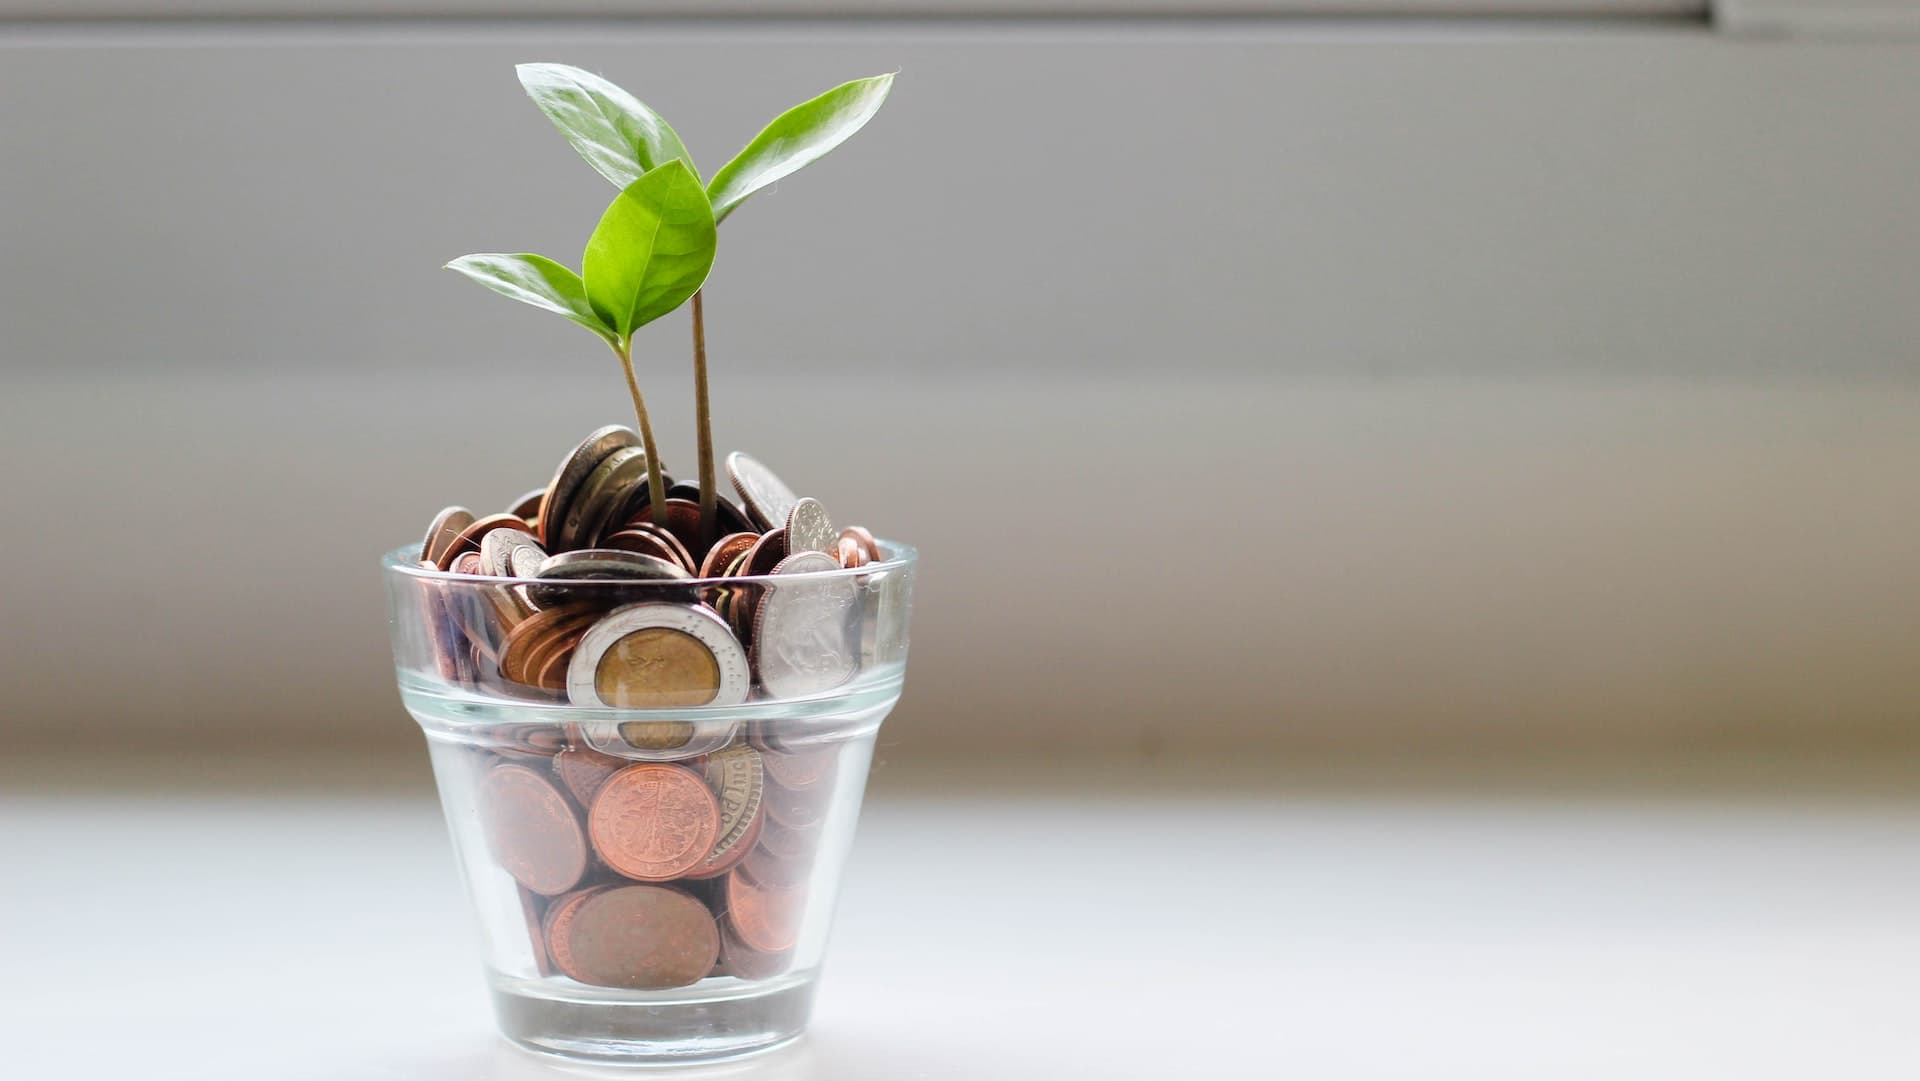 5 Tips On How To Get Started Investing With Very Little Money 1